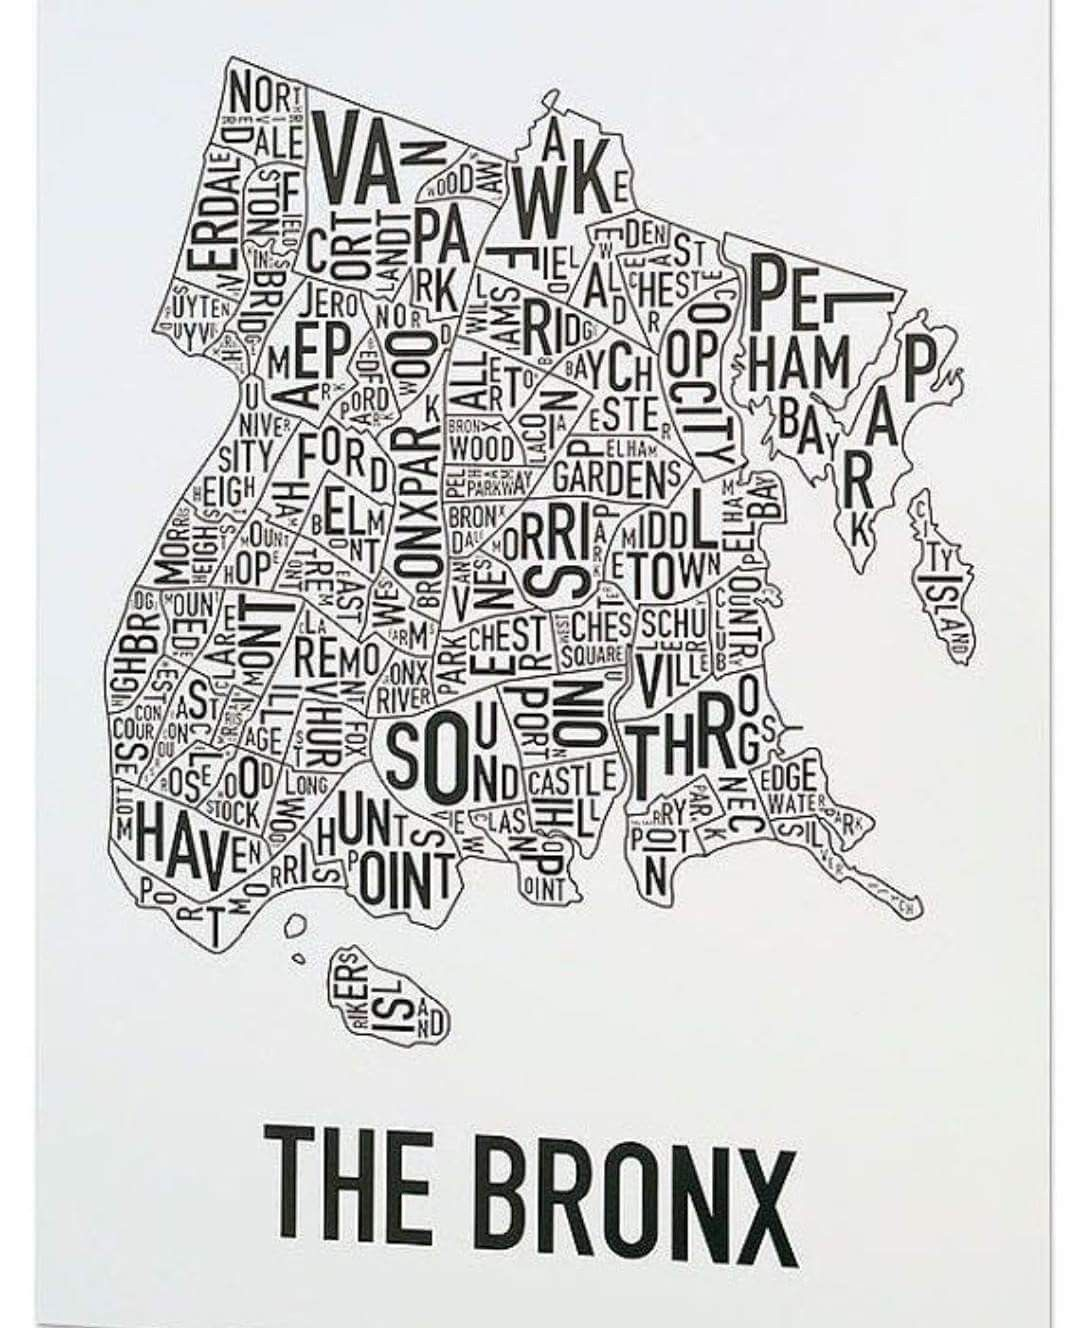 Pin by Claus Rosenfeldt Jensen on New York | Bronx map, New